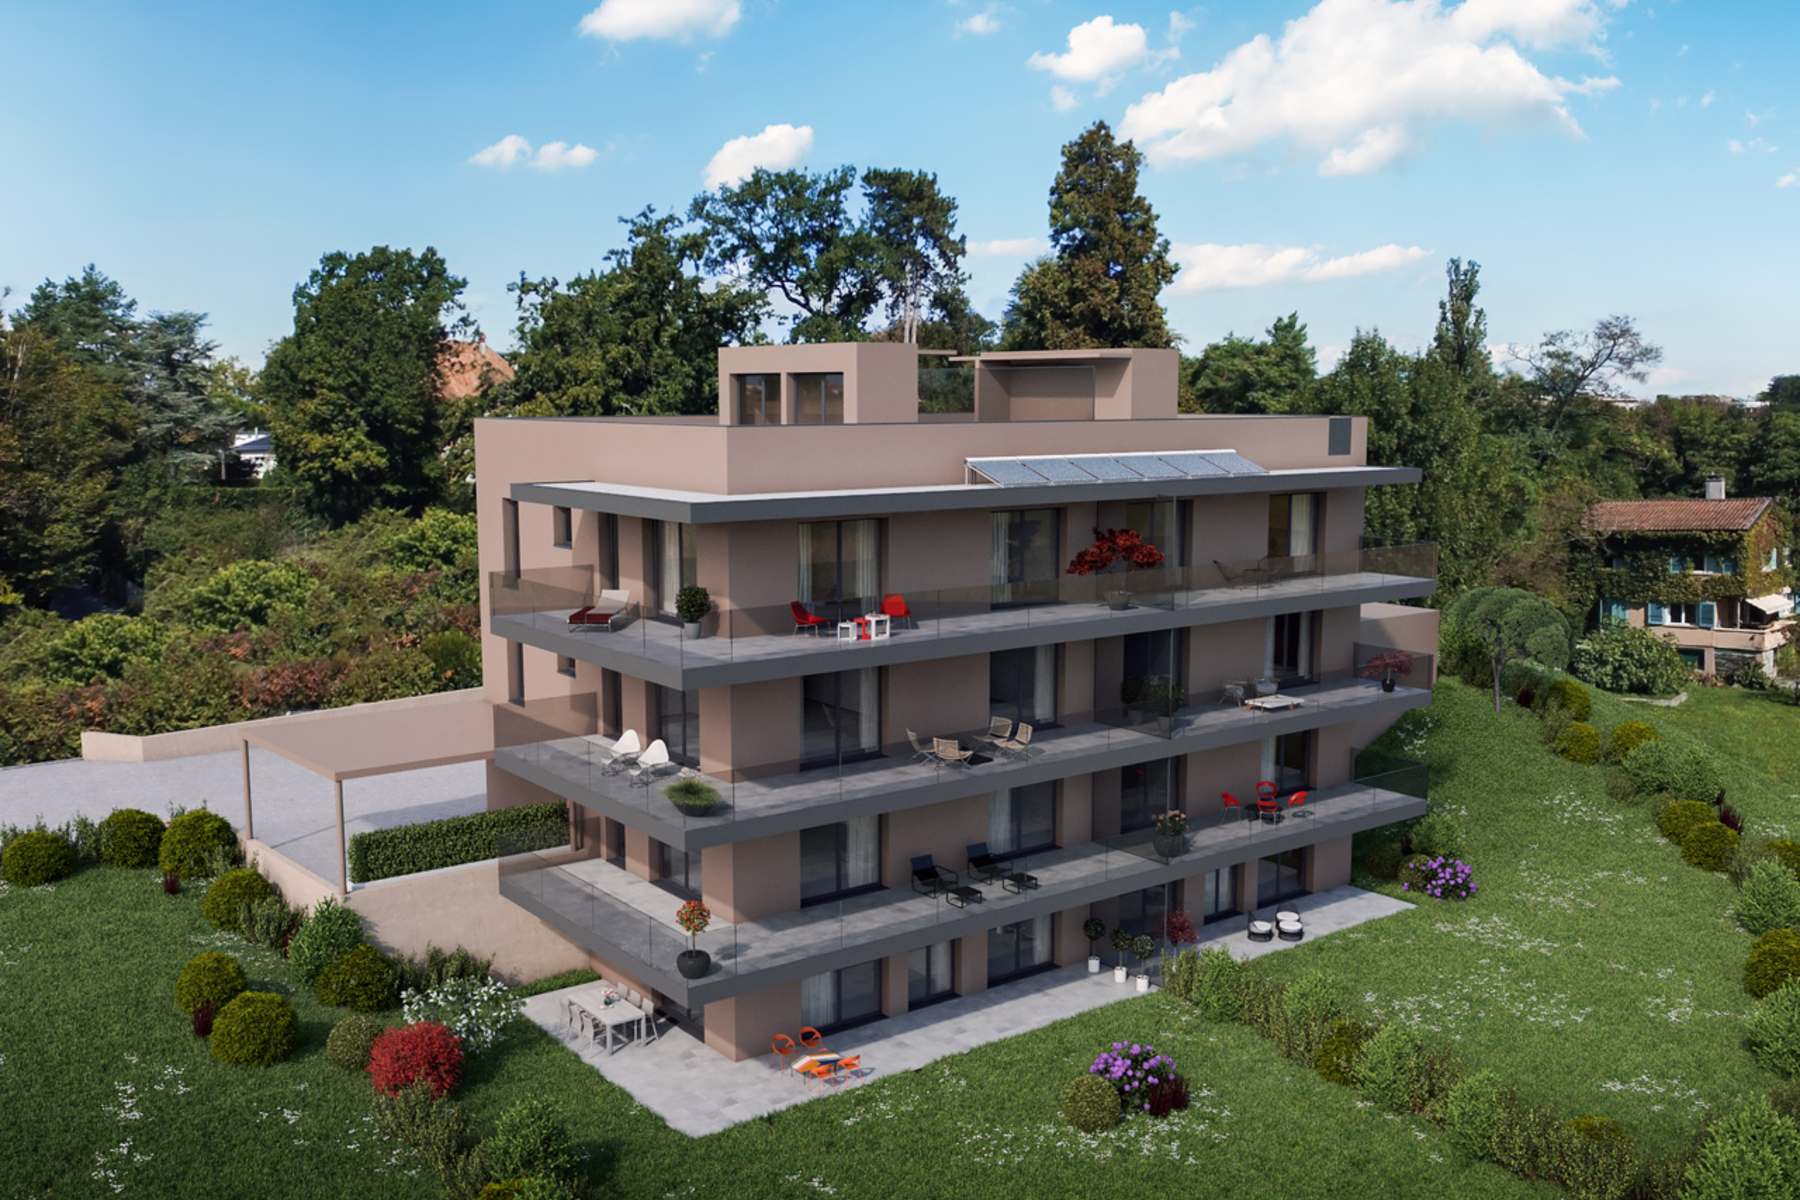 Квартира для того Продажа на 1st floor - Option II 6 room South West apartment Champel, Geneva, Жене́ва, 1206 Швейцария